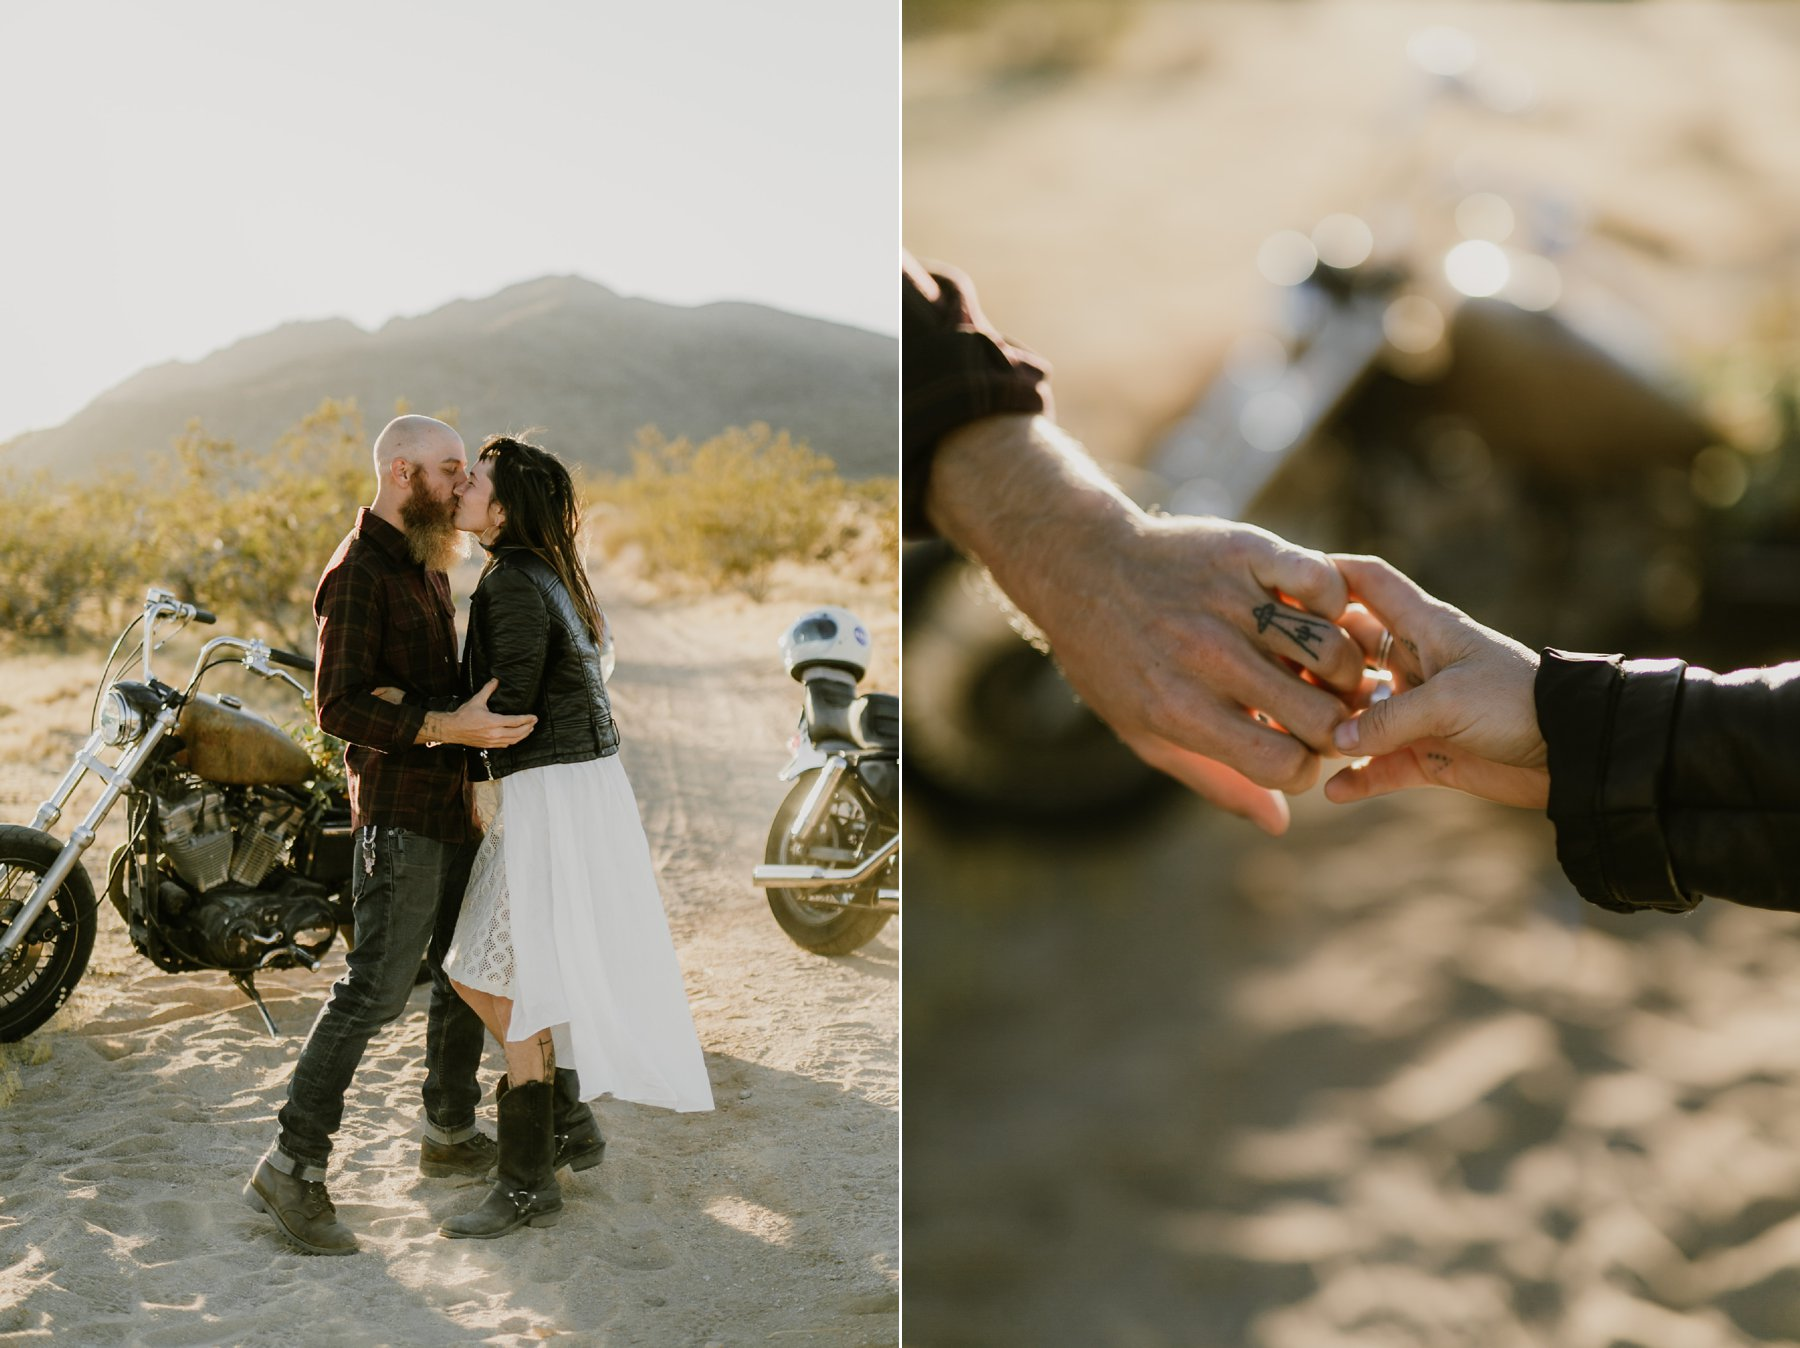 motorcycle-elopement-in-joshua-tree_0004.jpg